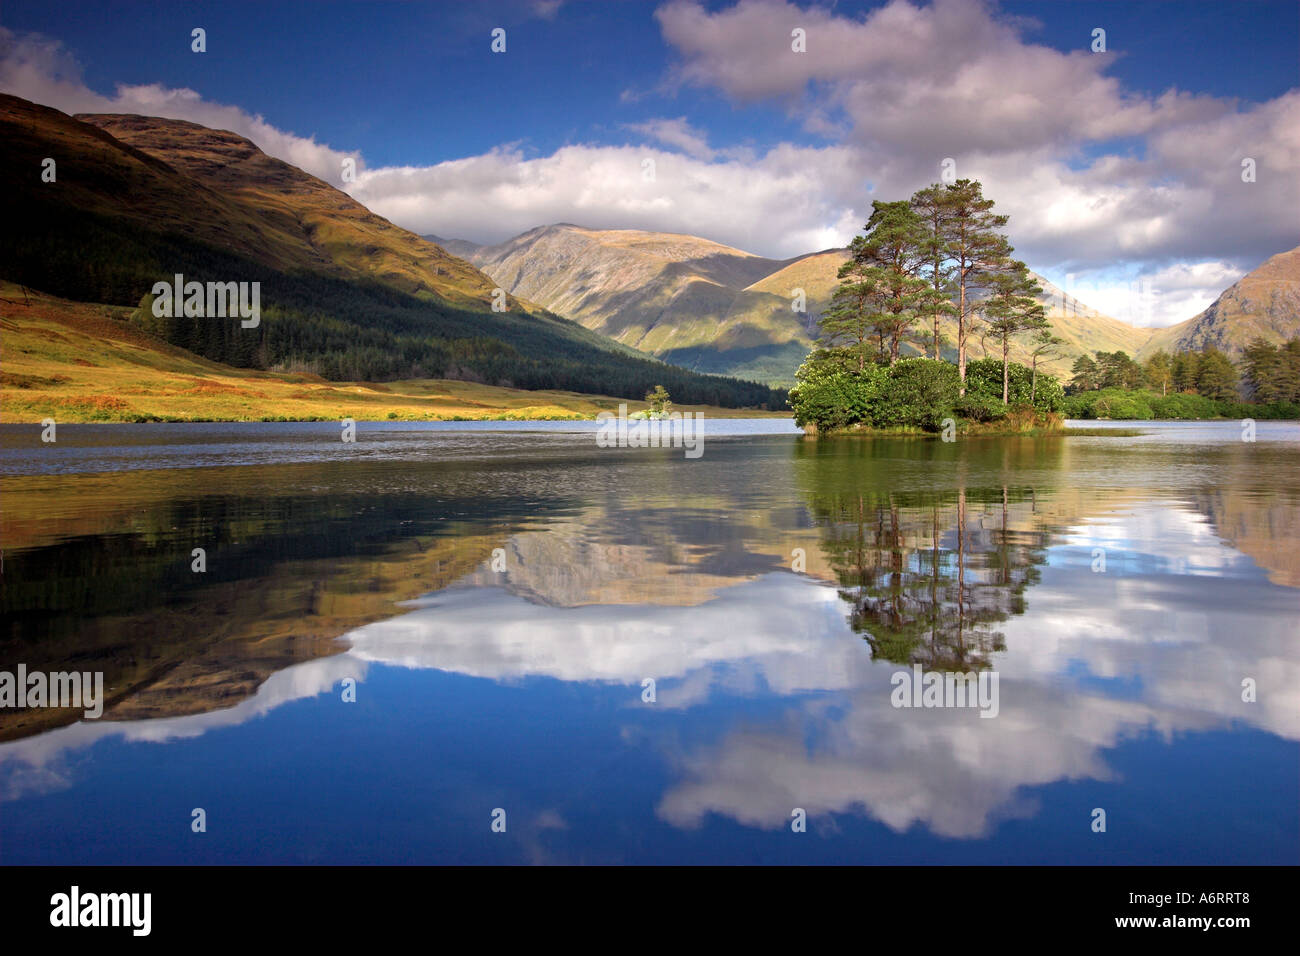 A perfect reflection at Glen Etive in the Scottish Highlands.  The single island, bathed in sunshine sits proudly on the Loch. - Stock Image